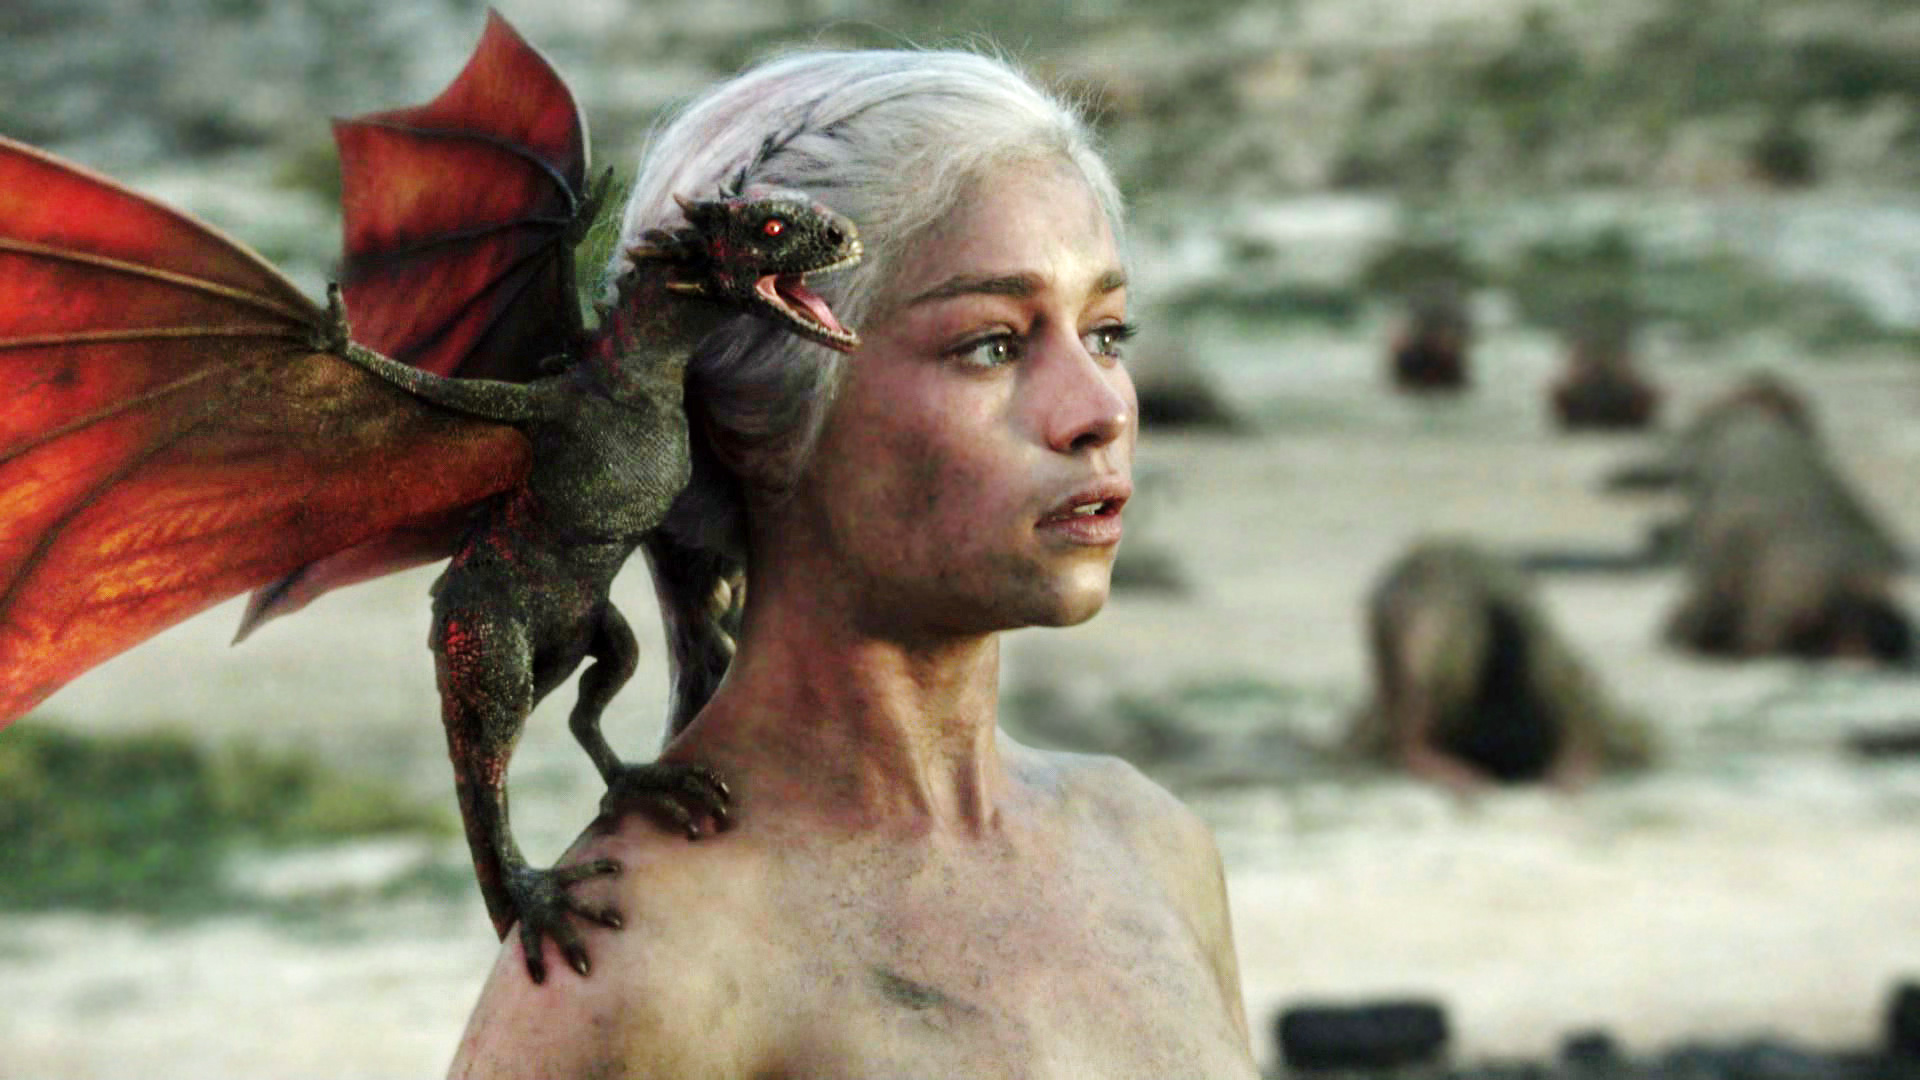 daenerys dragon GameofThrones 2